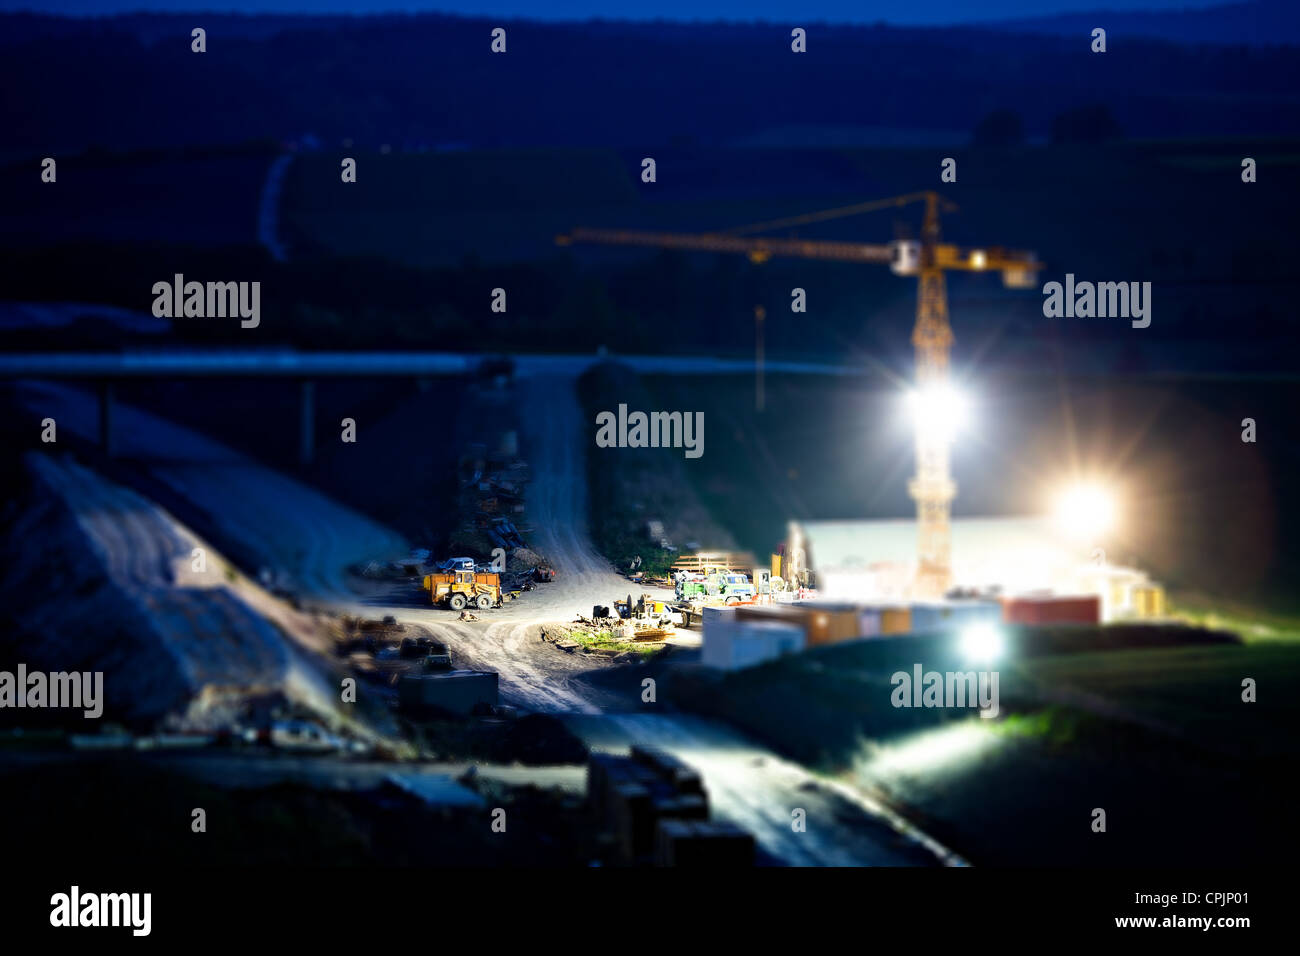 Construction of neu motorway in Germany - Stock Image